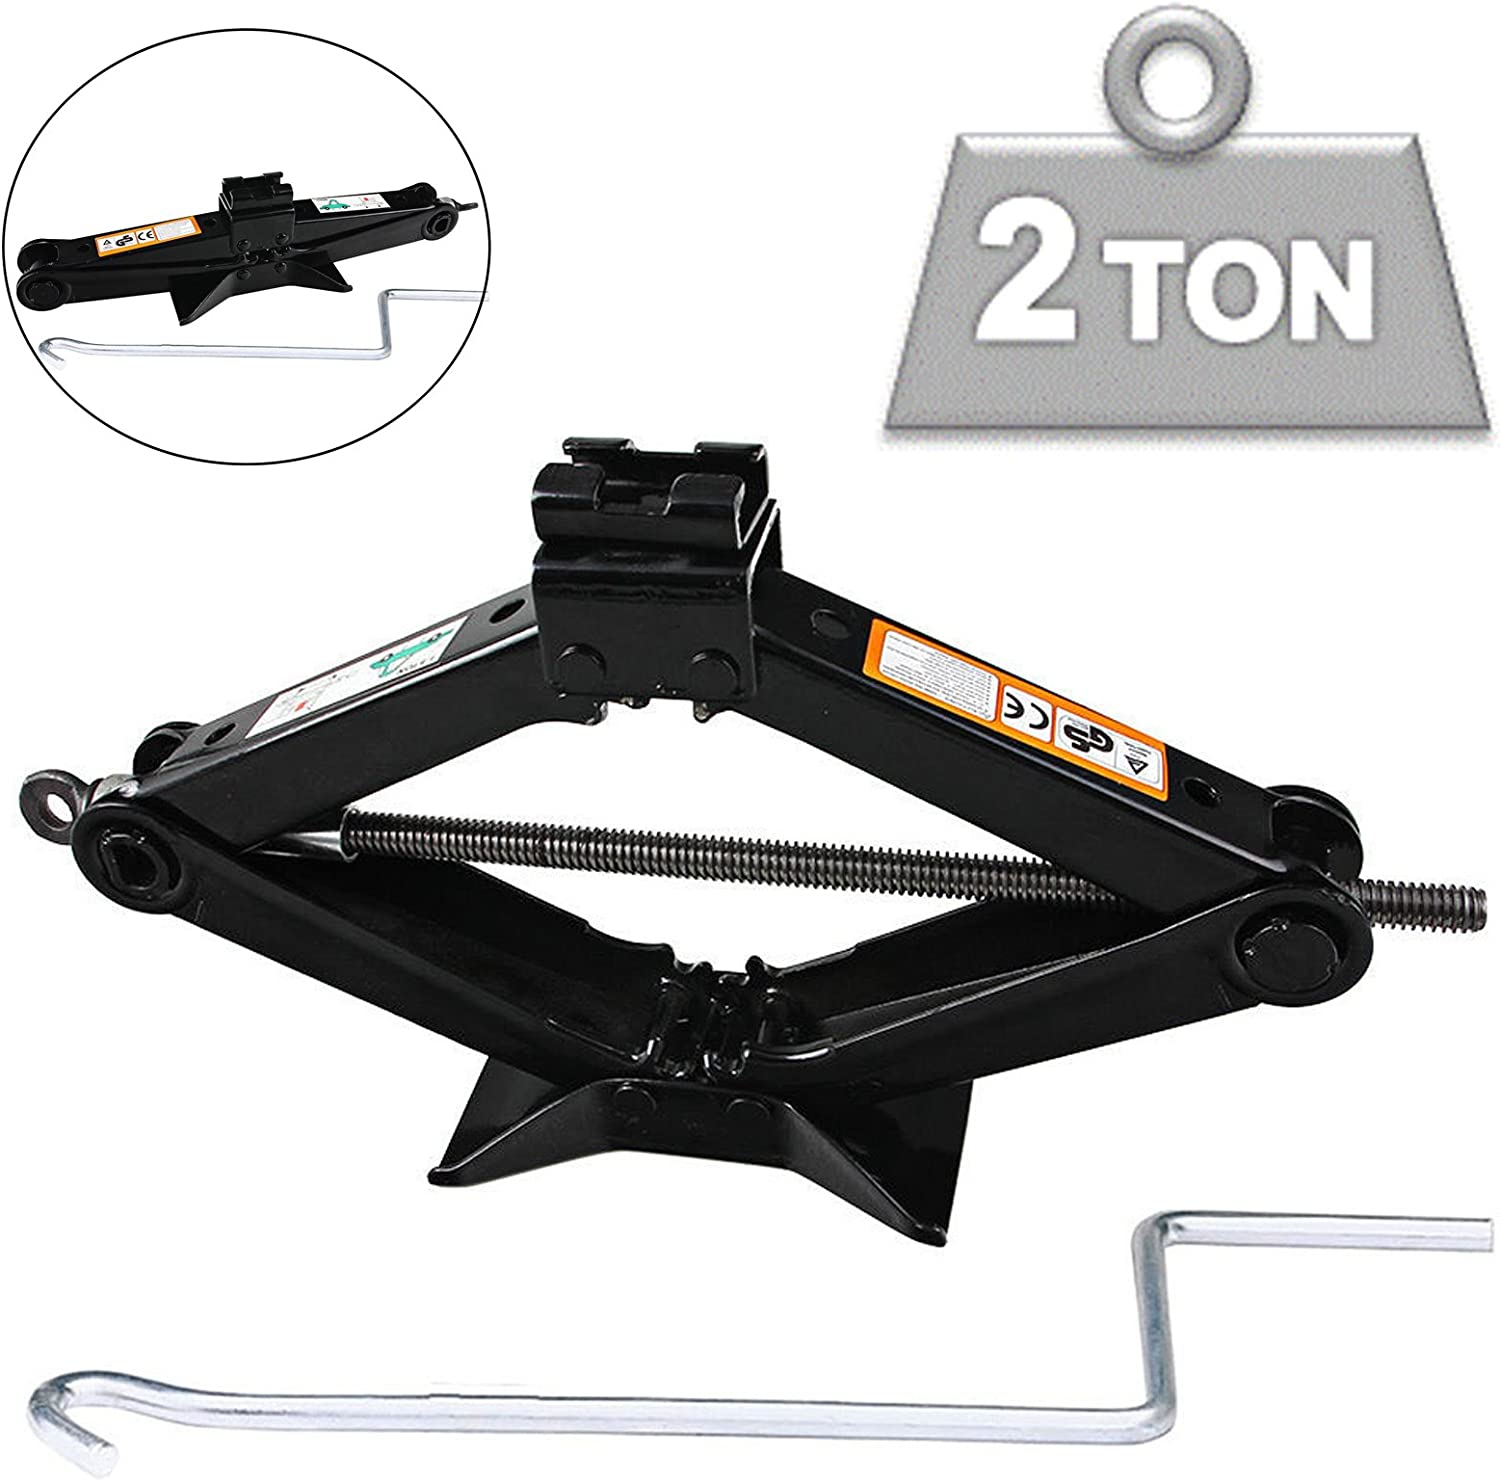 Universal RustProof 2 TON Tonne Car Van Scissor Jack Wind Up Lift with Chromed Crank Speed Handle 2 Yr Guarantee